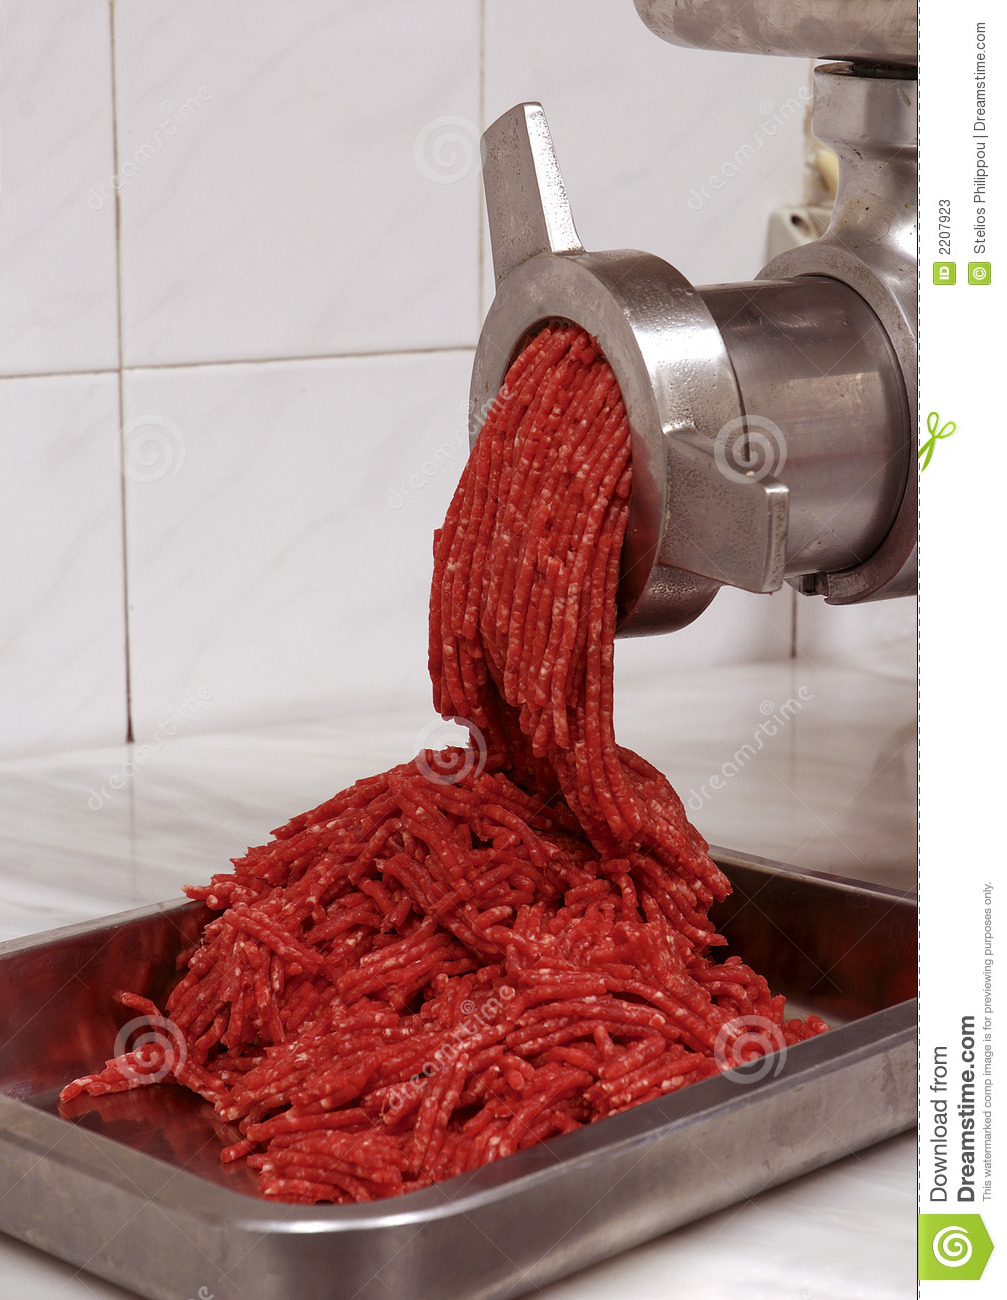 ground beef machine